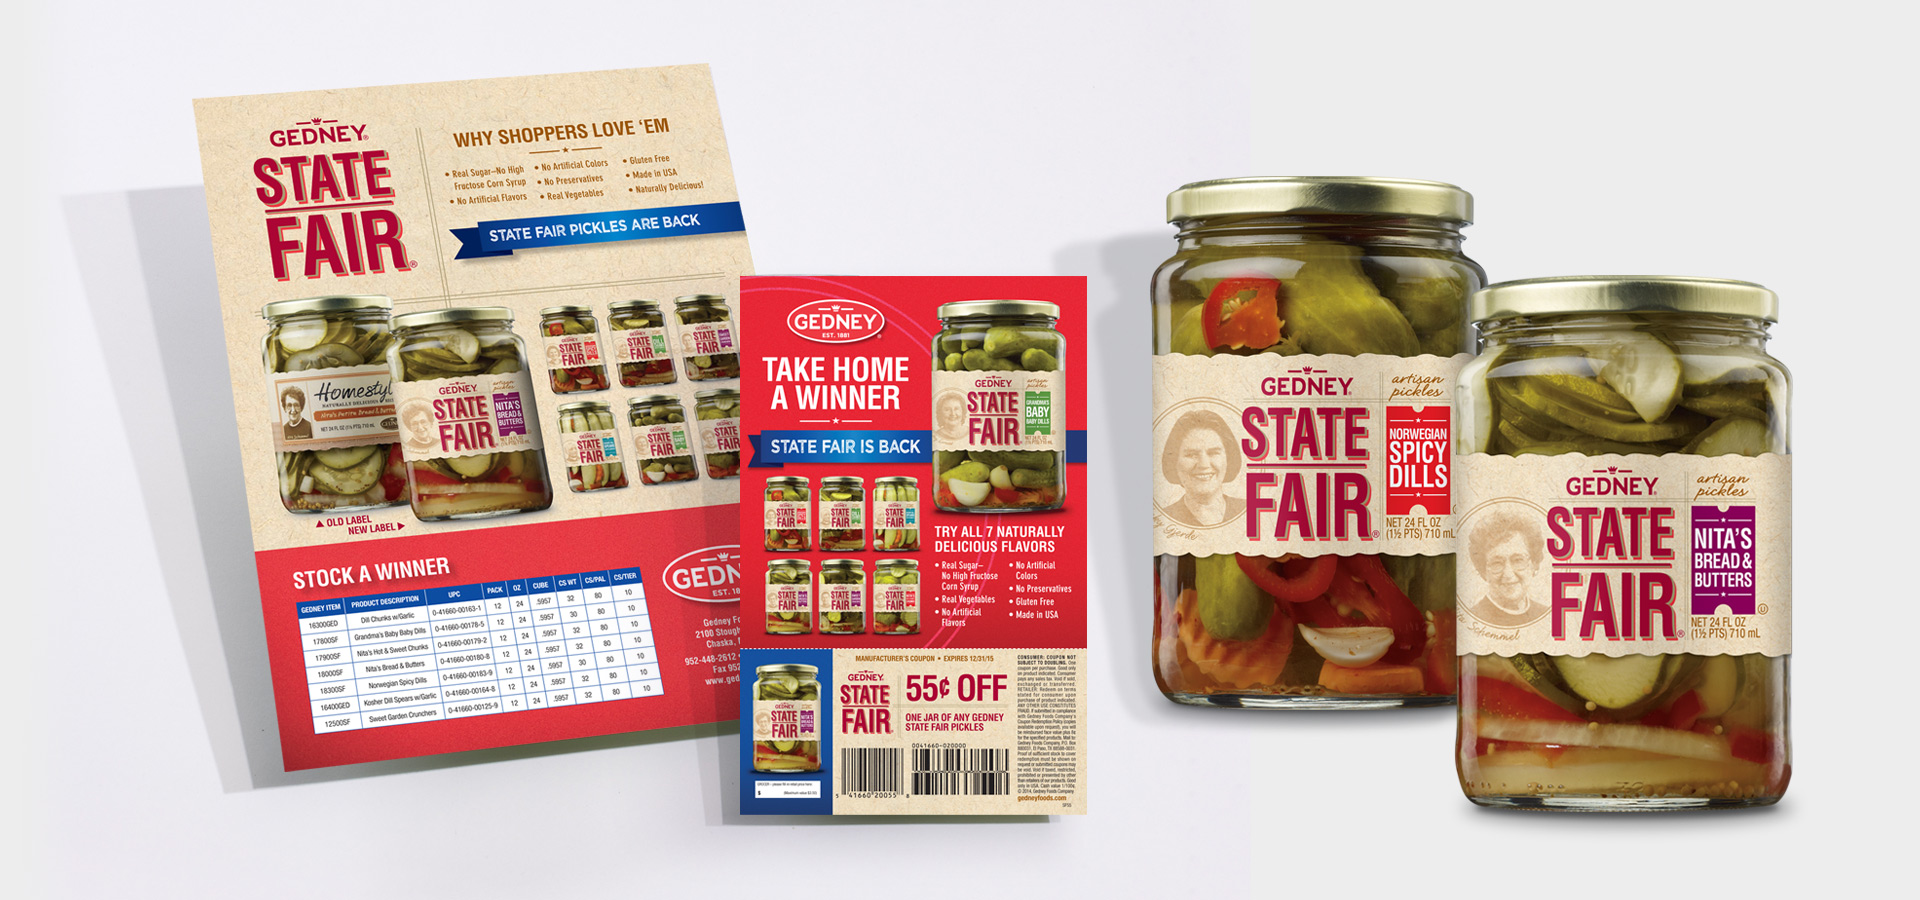 gedney state fair pickles materials and jars